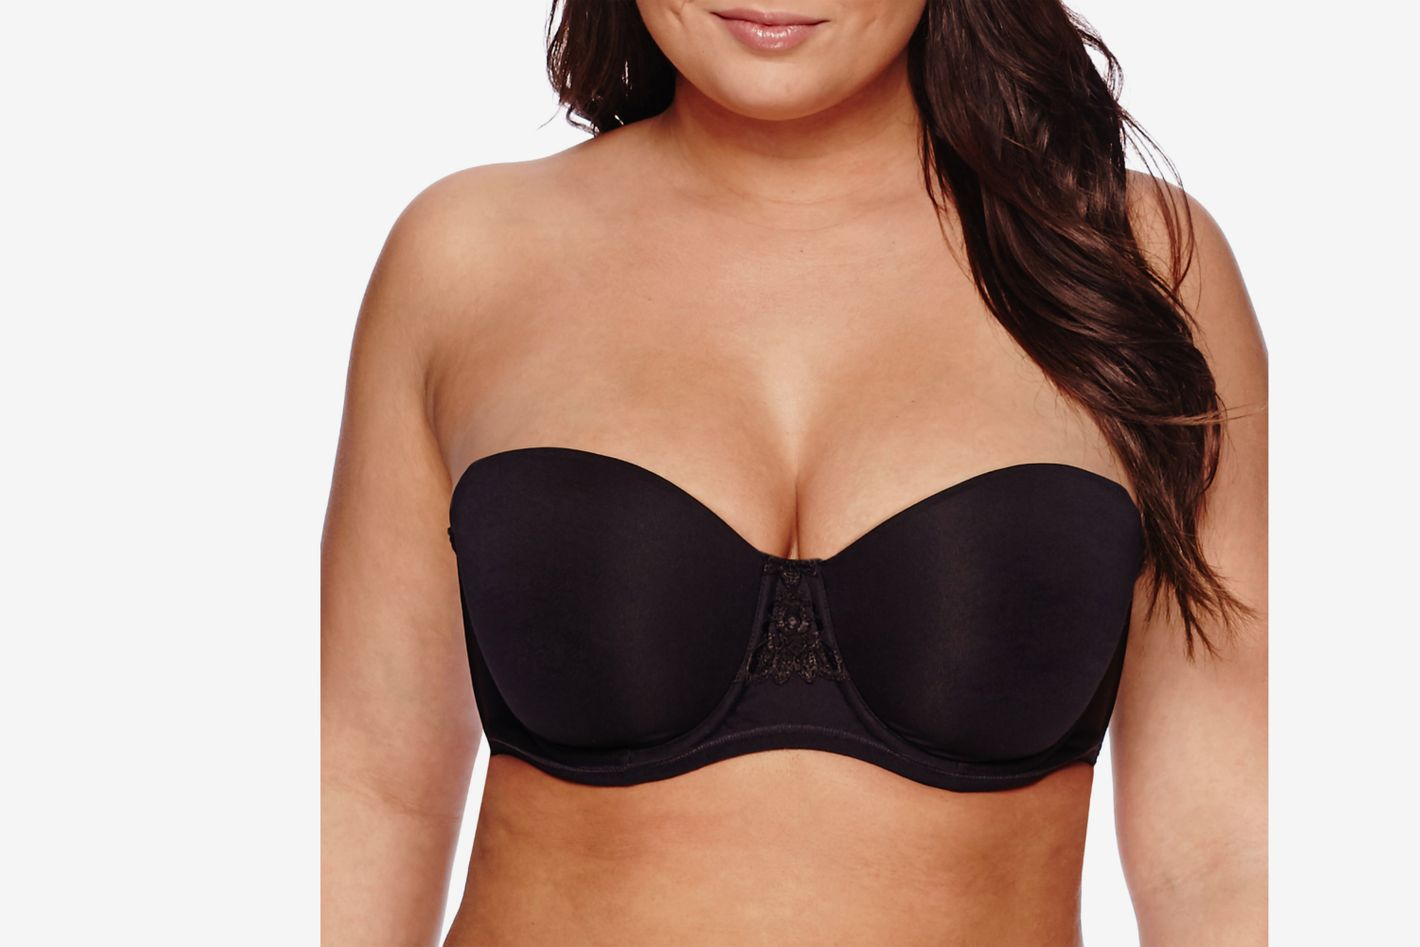 23 Best Strapless Bras You Can Buy in 2018 75050102b